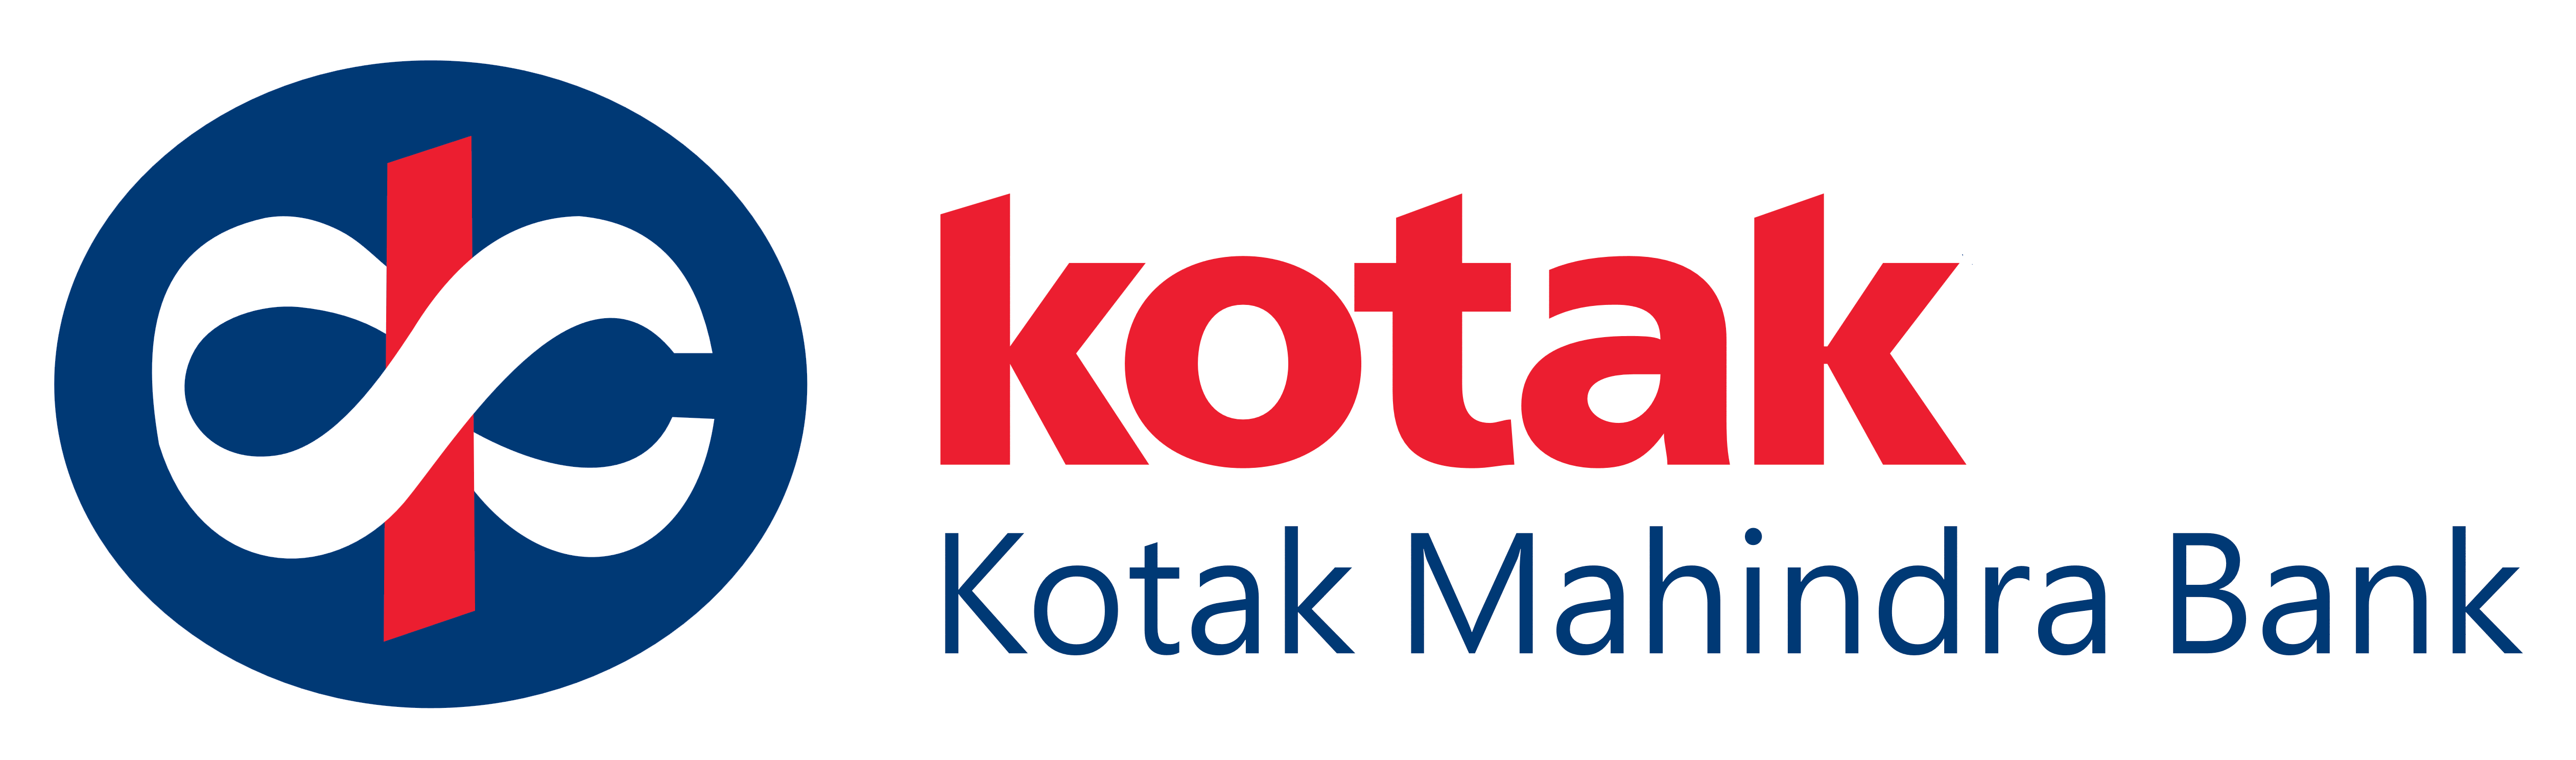 Kotak 811 Account Opening Online One Digital Account Makes Your Life Smooth Kotak Mahindra Bank Personal Loans Financial Services